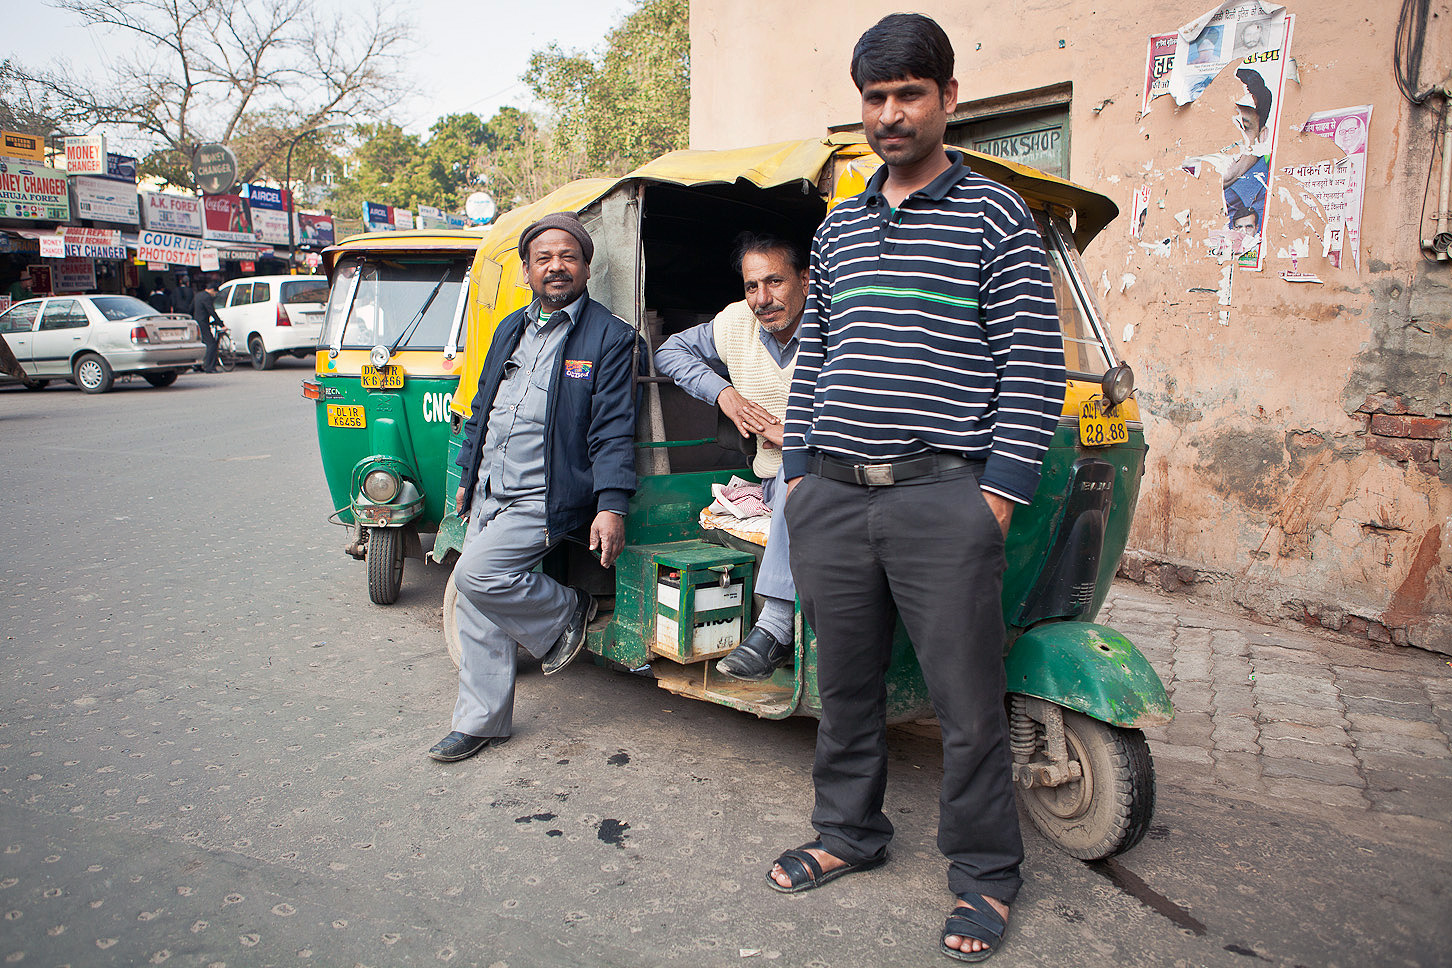 One of my favourtie moments. I was on my way back from India Gate via Khan Market and I saw these guys waiting for punters. I had to photograph them; they looked so suave, especially the man sitting in the rickshaw.